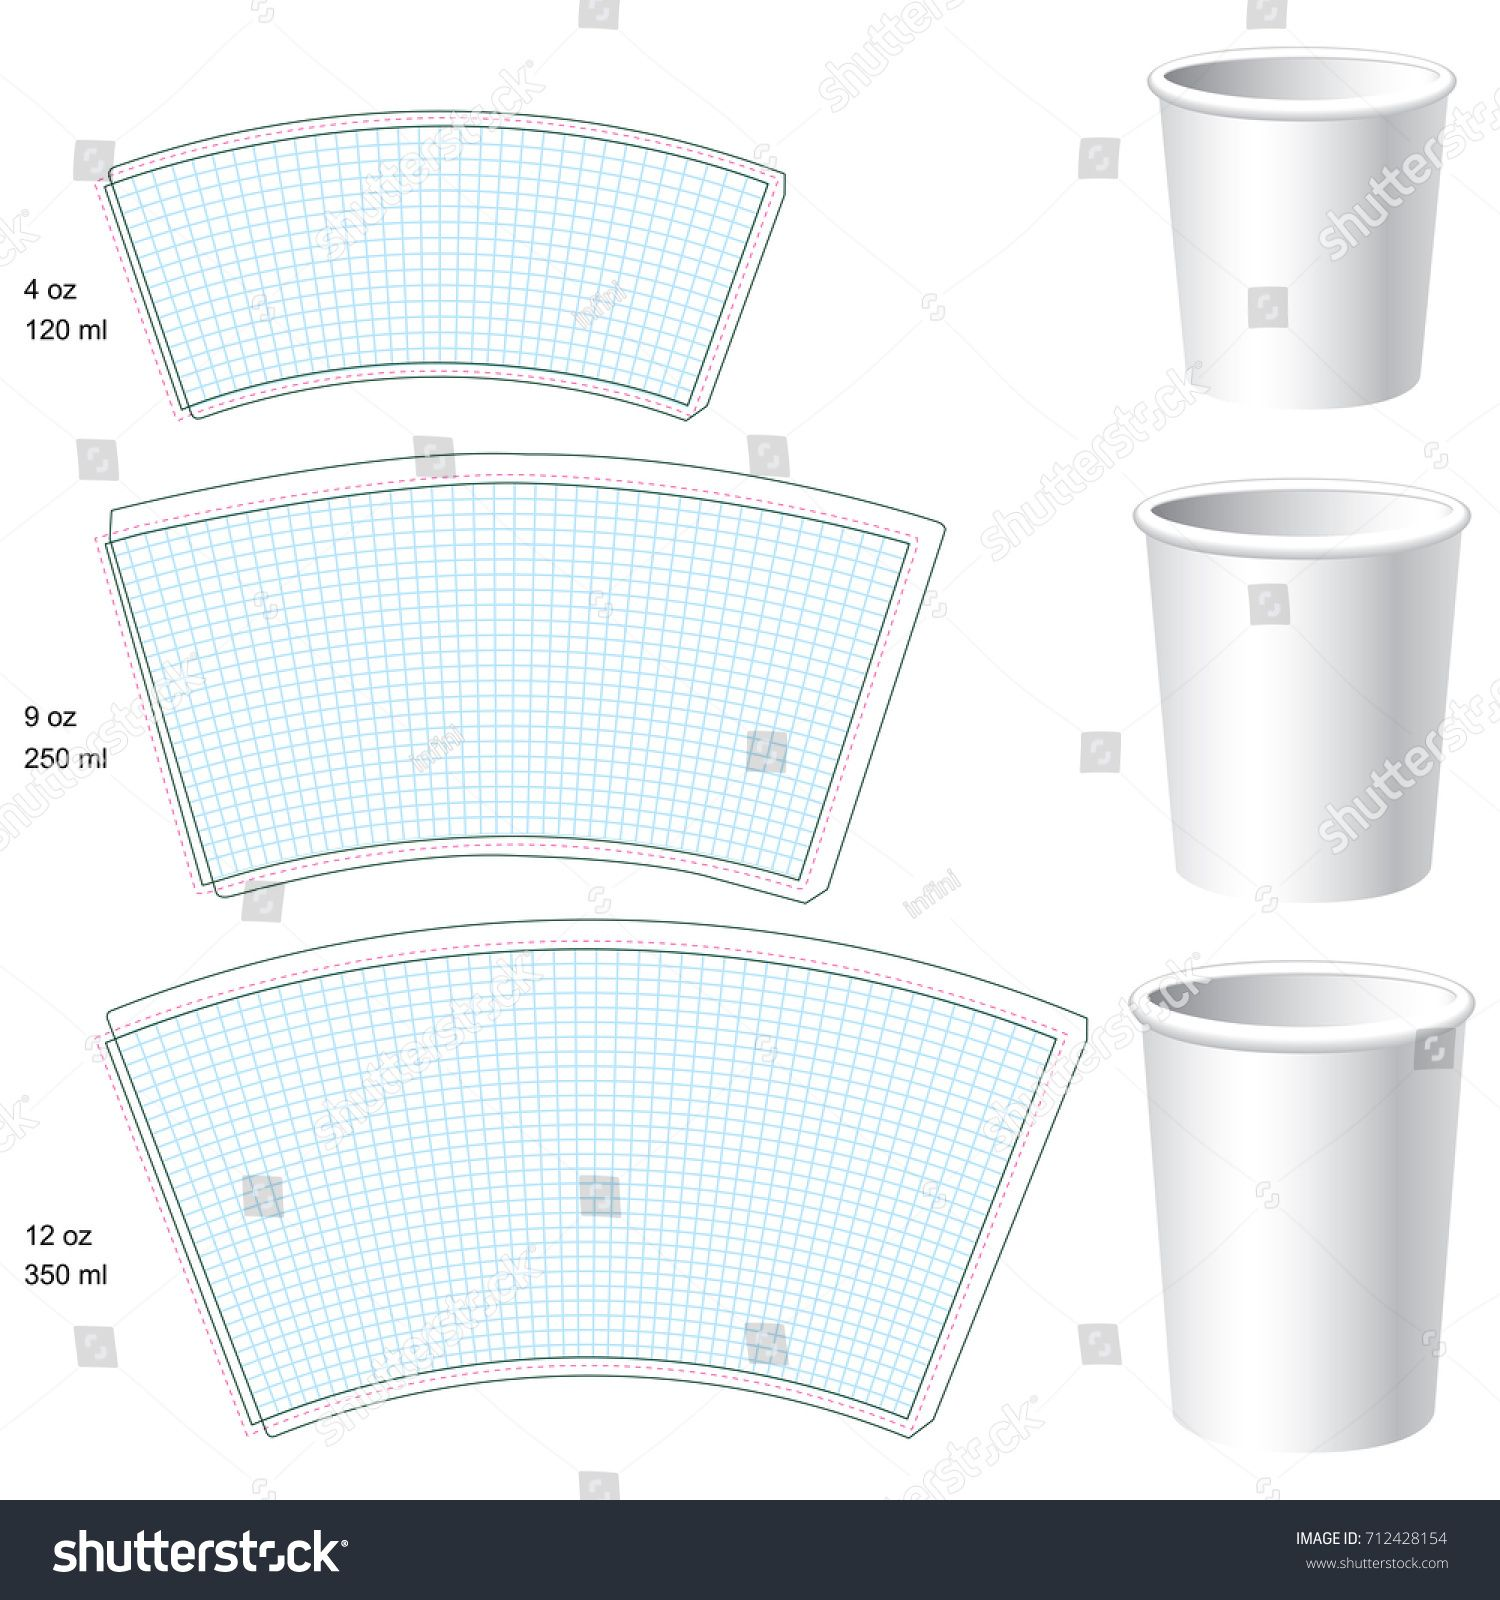 Paper Cup Vector Blank Templates 3 Stock Vector (Royalty